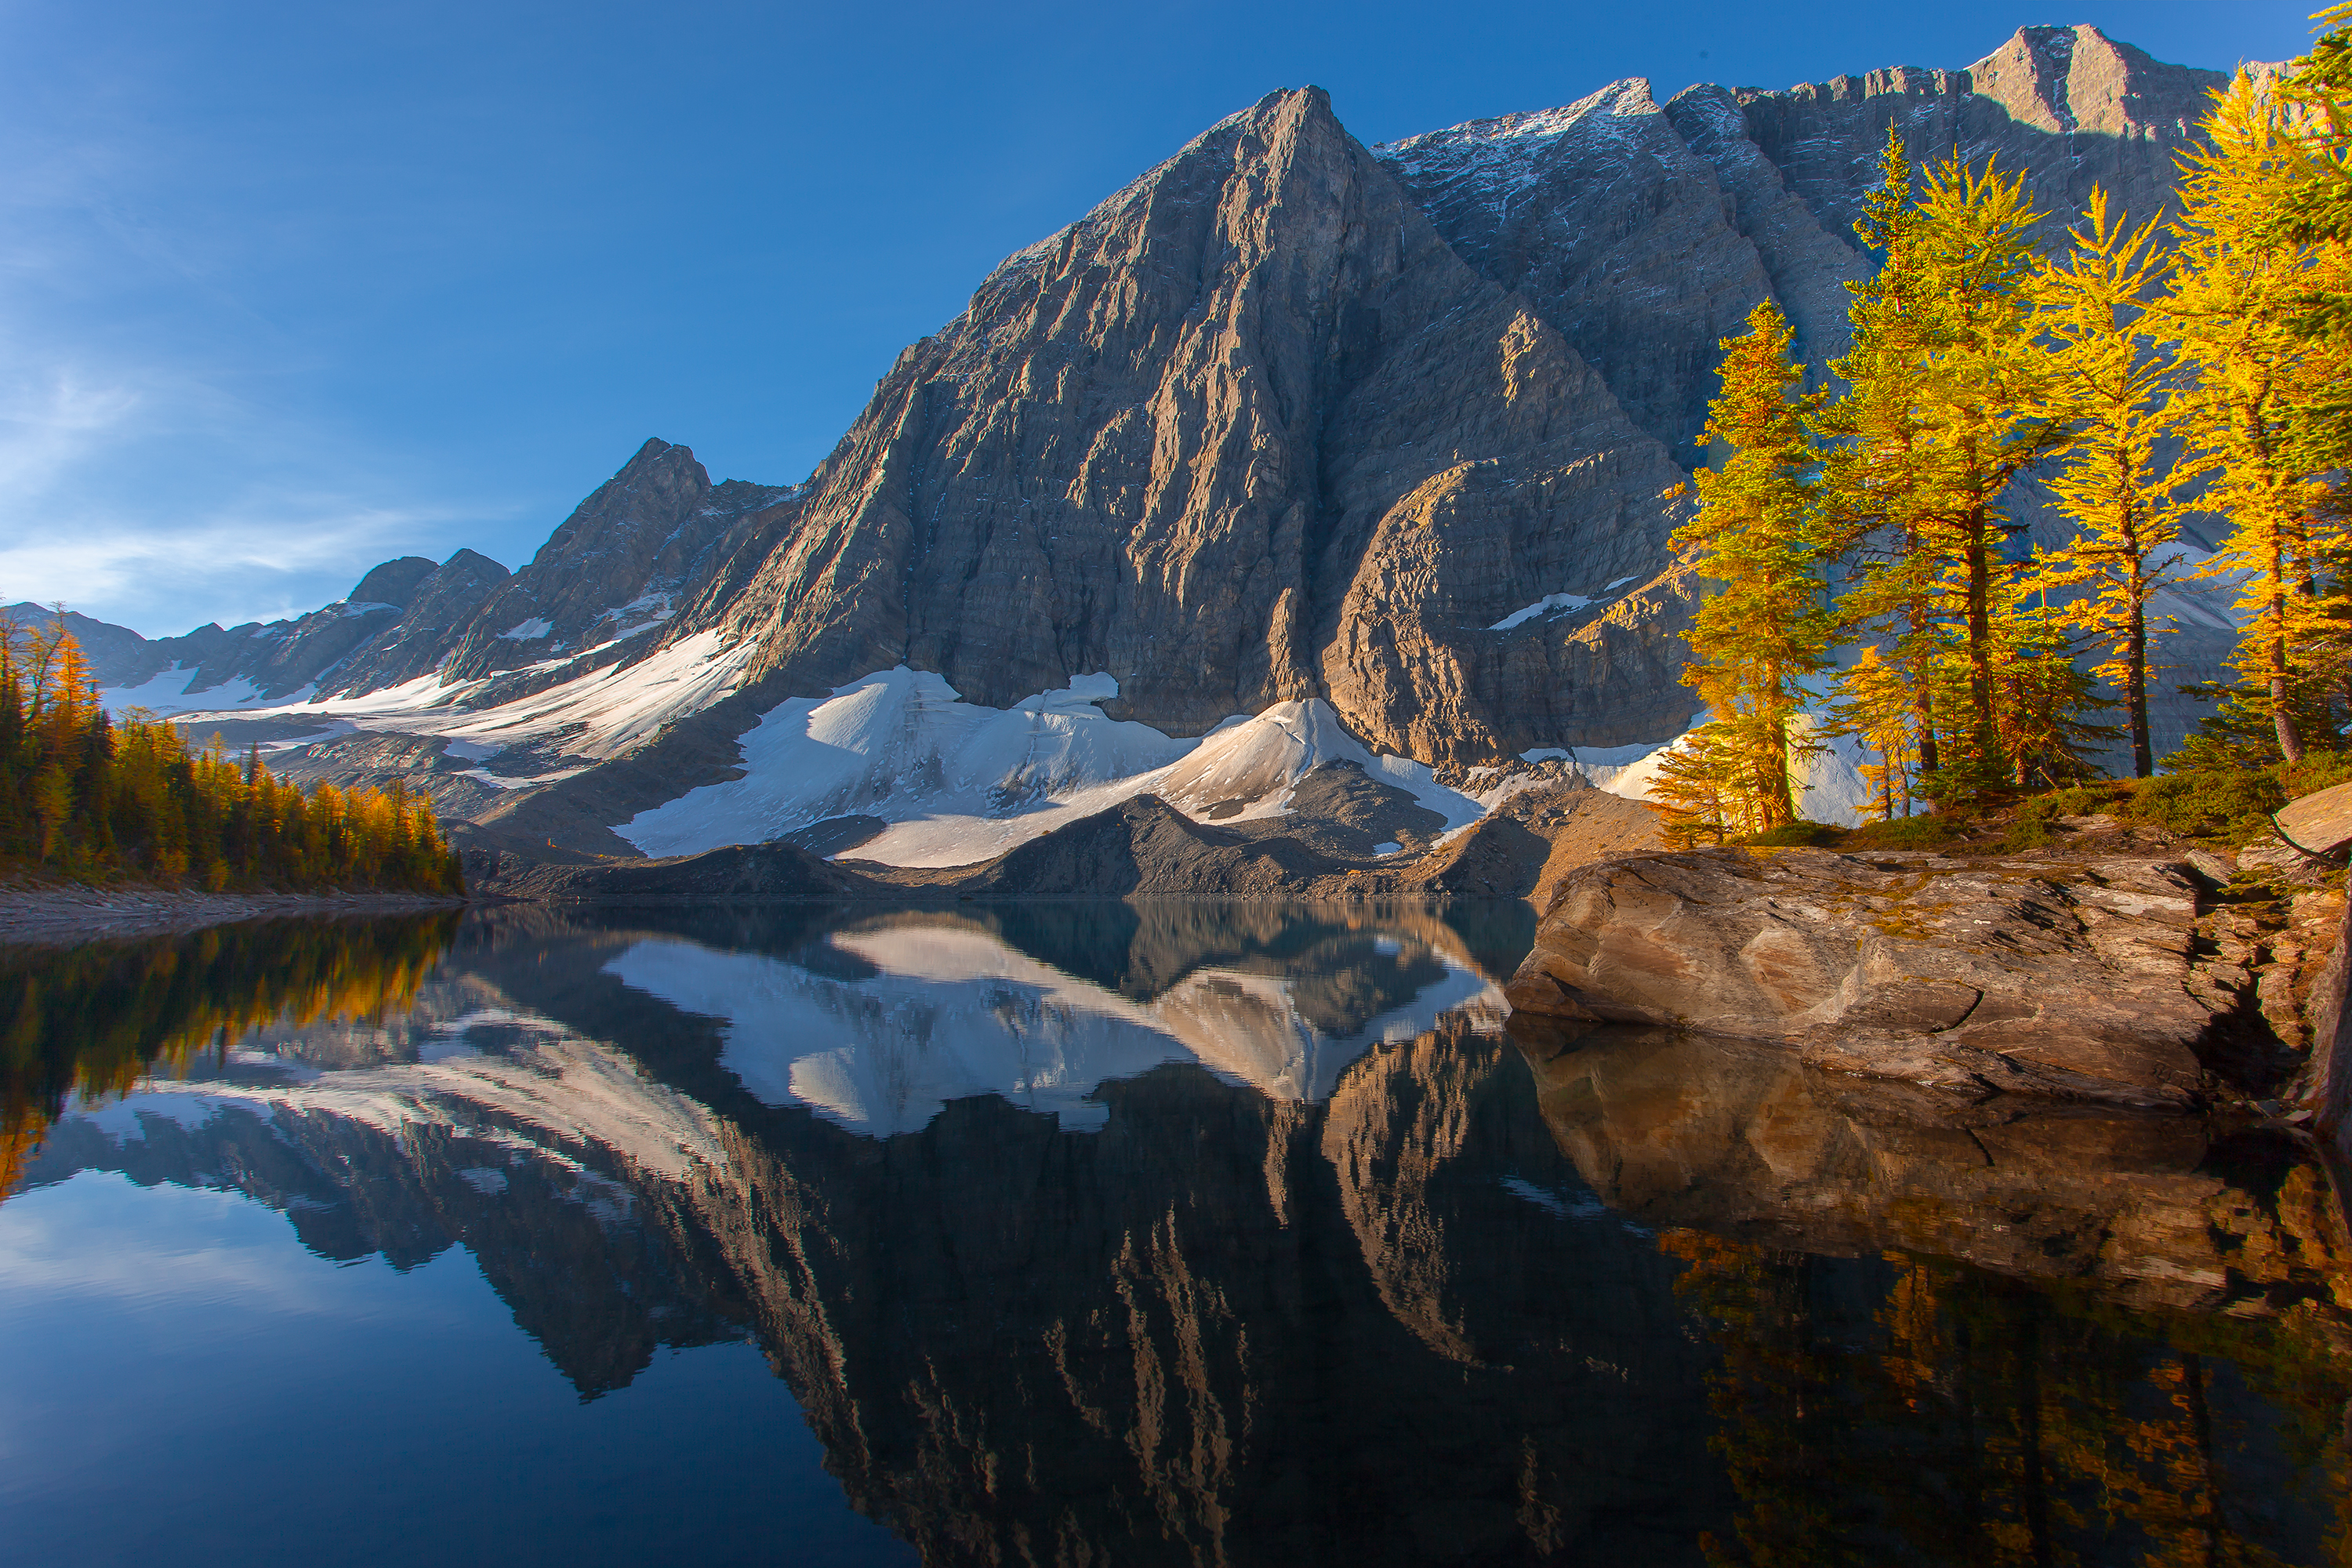 Kootenay national park national park in british columbia cover photo full sciox Image collections